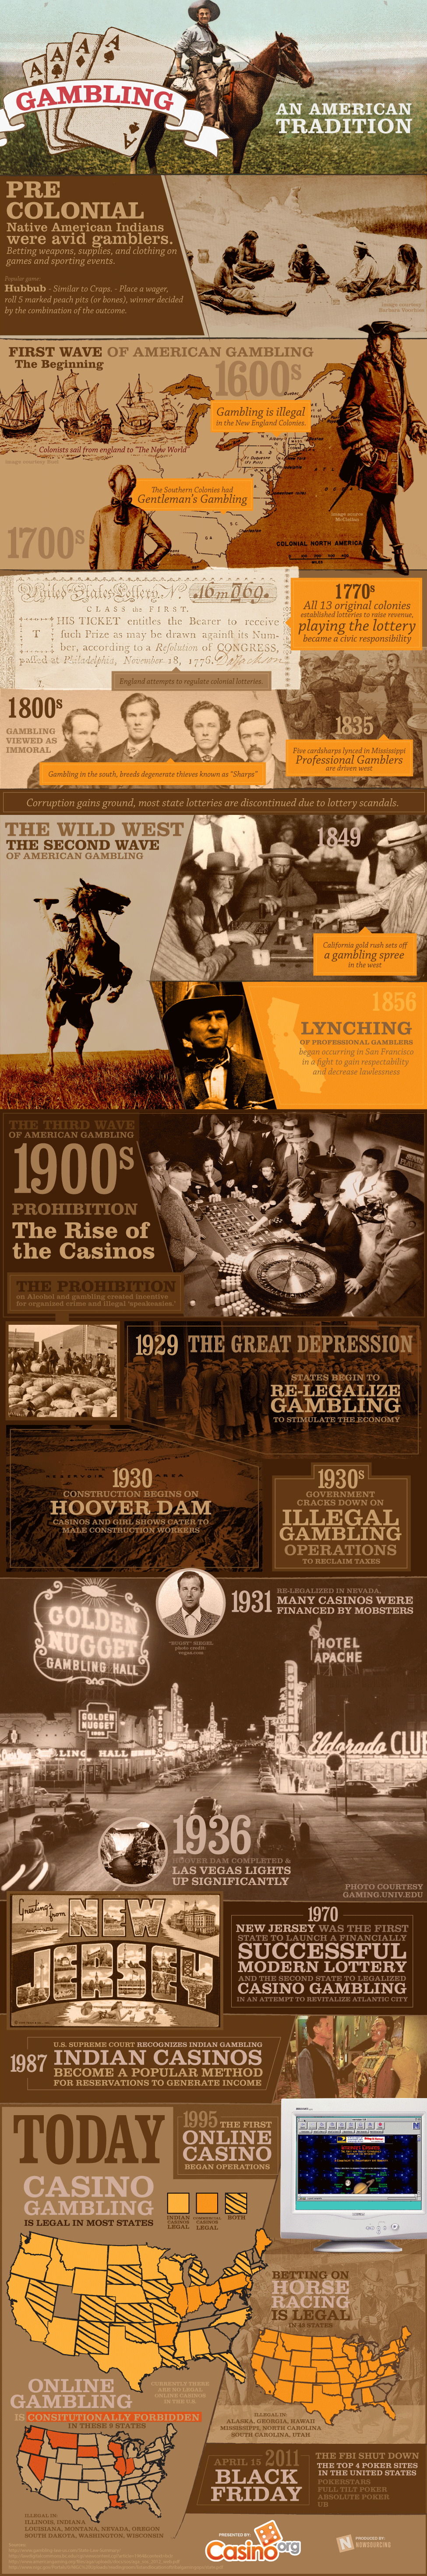 The History of American Gambling [Infographic] Fun facts